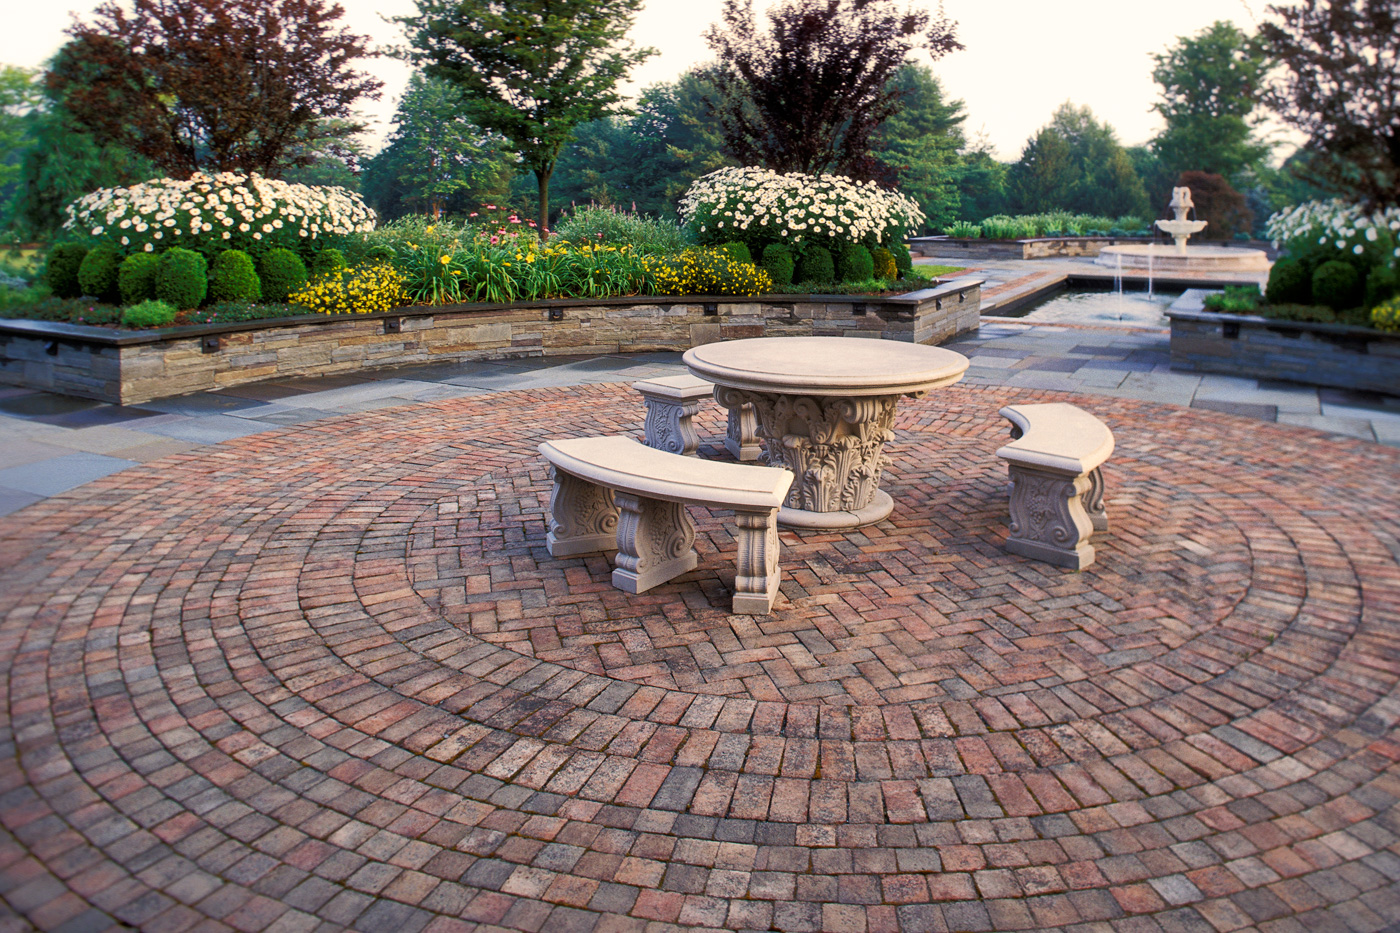 Brick terrace designs native home garden design for Garden designs with stone circles